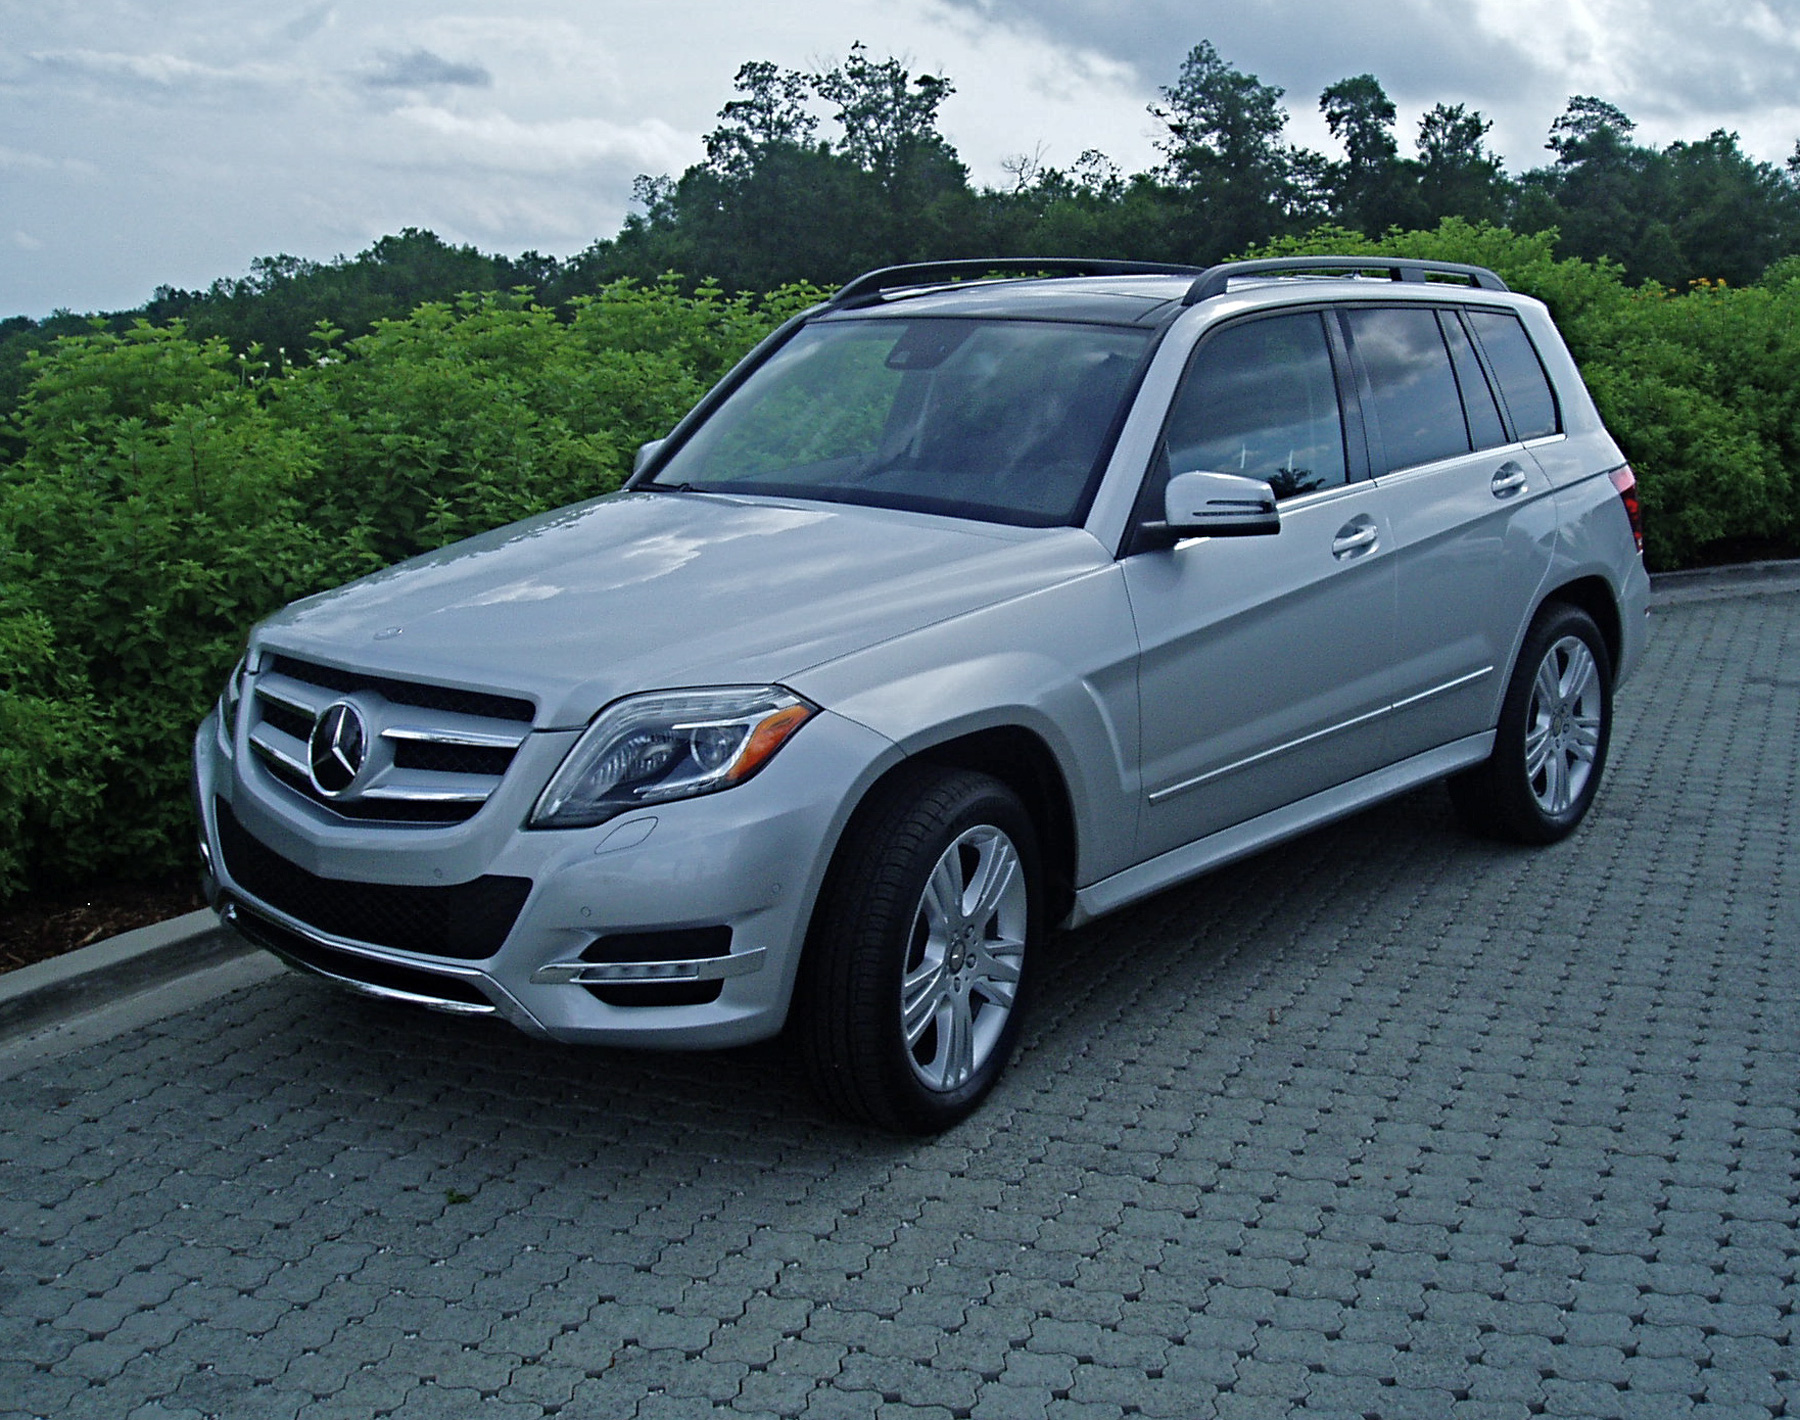 test drive 2013 mercedes benz glk350 4matic our auto expert. Black Bedroom Furniture Sets. Home Design Ideas